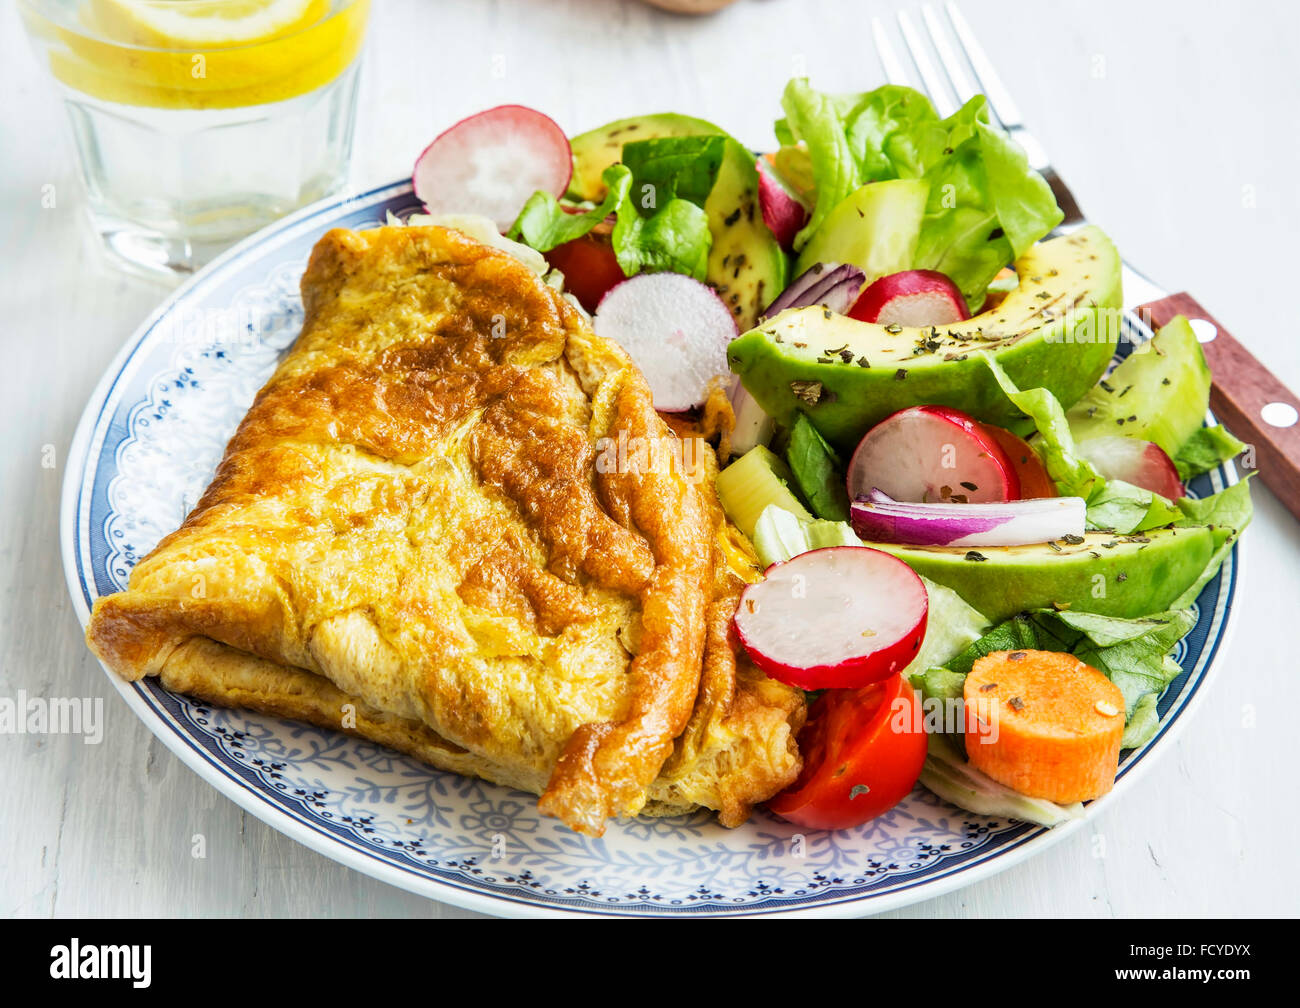 Omelette with vegetables salad and avocado,healthy breakfast meal - Stock Image